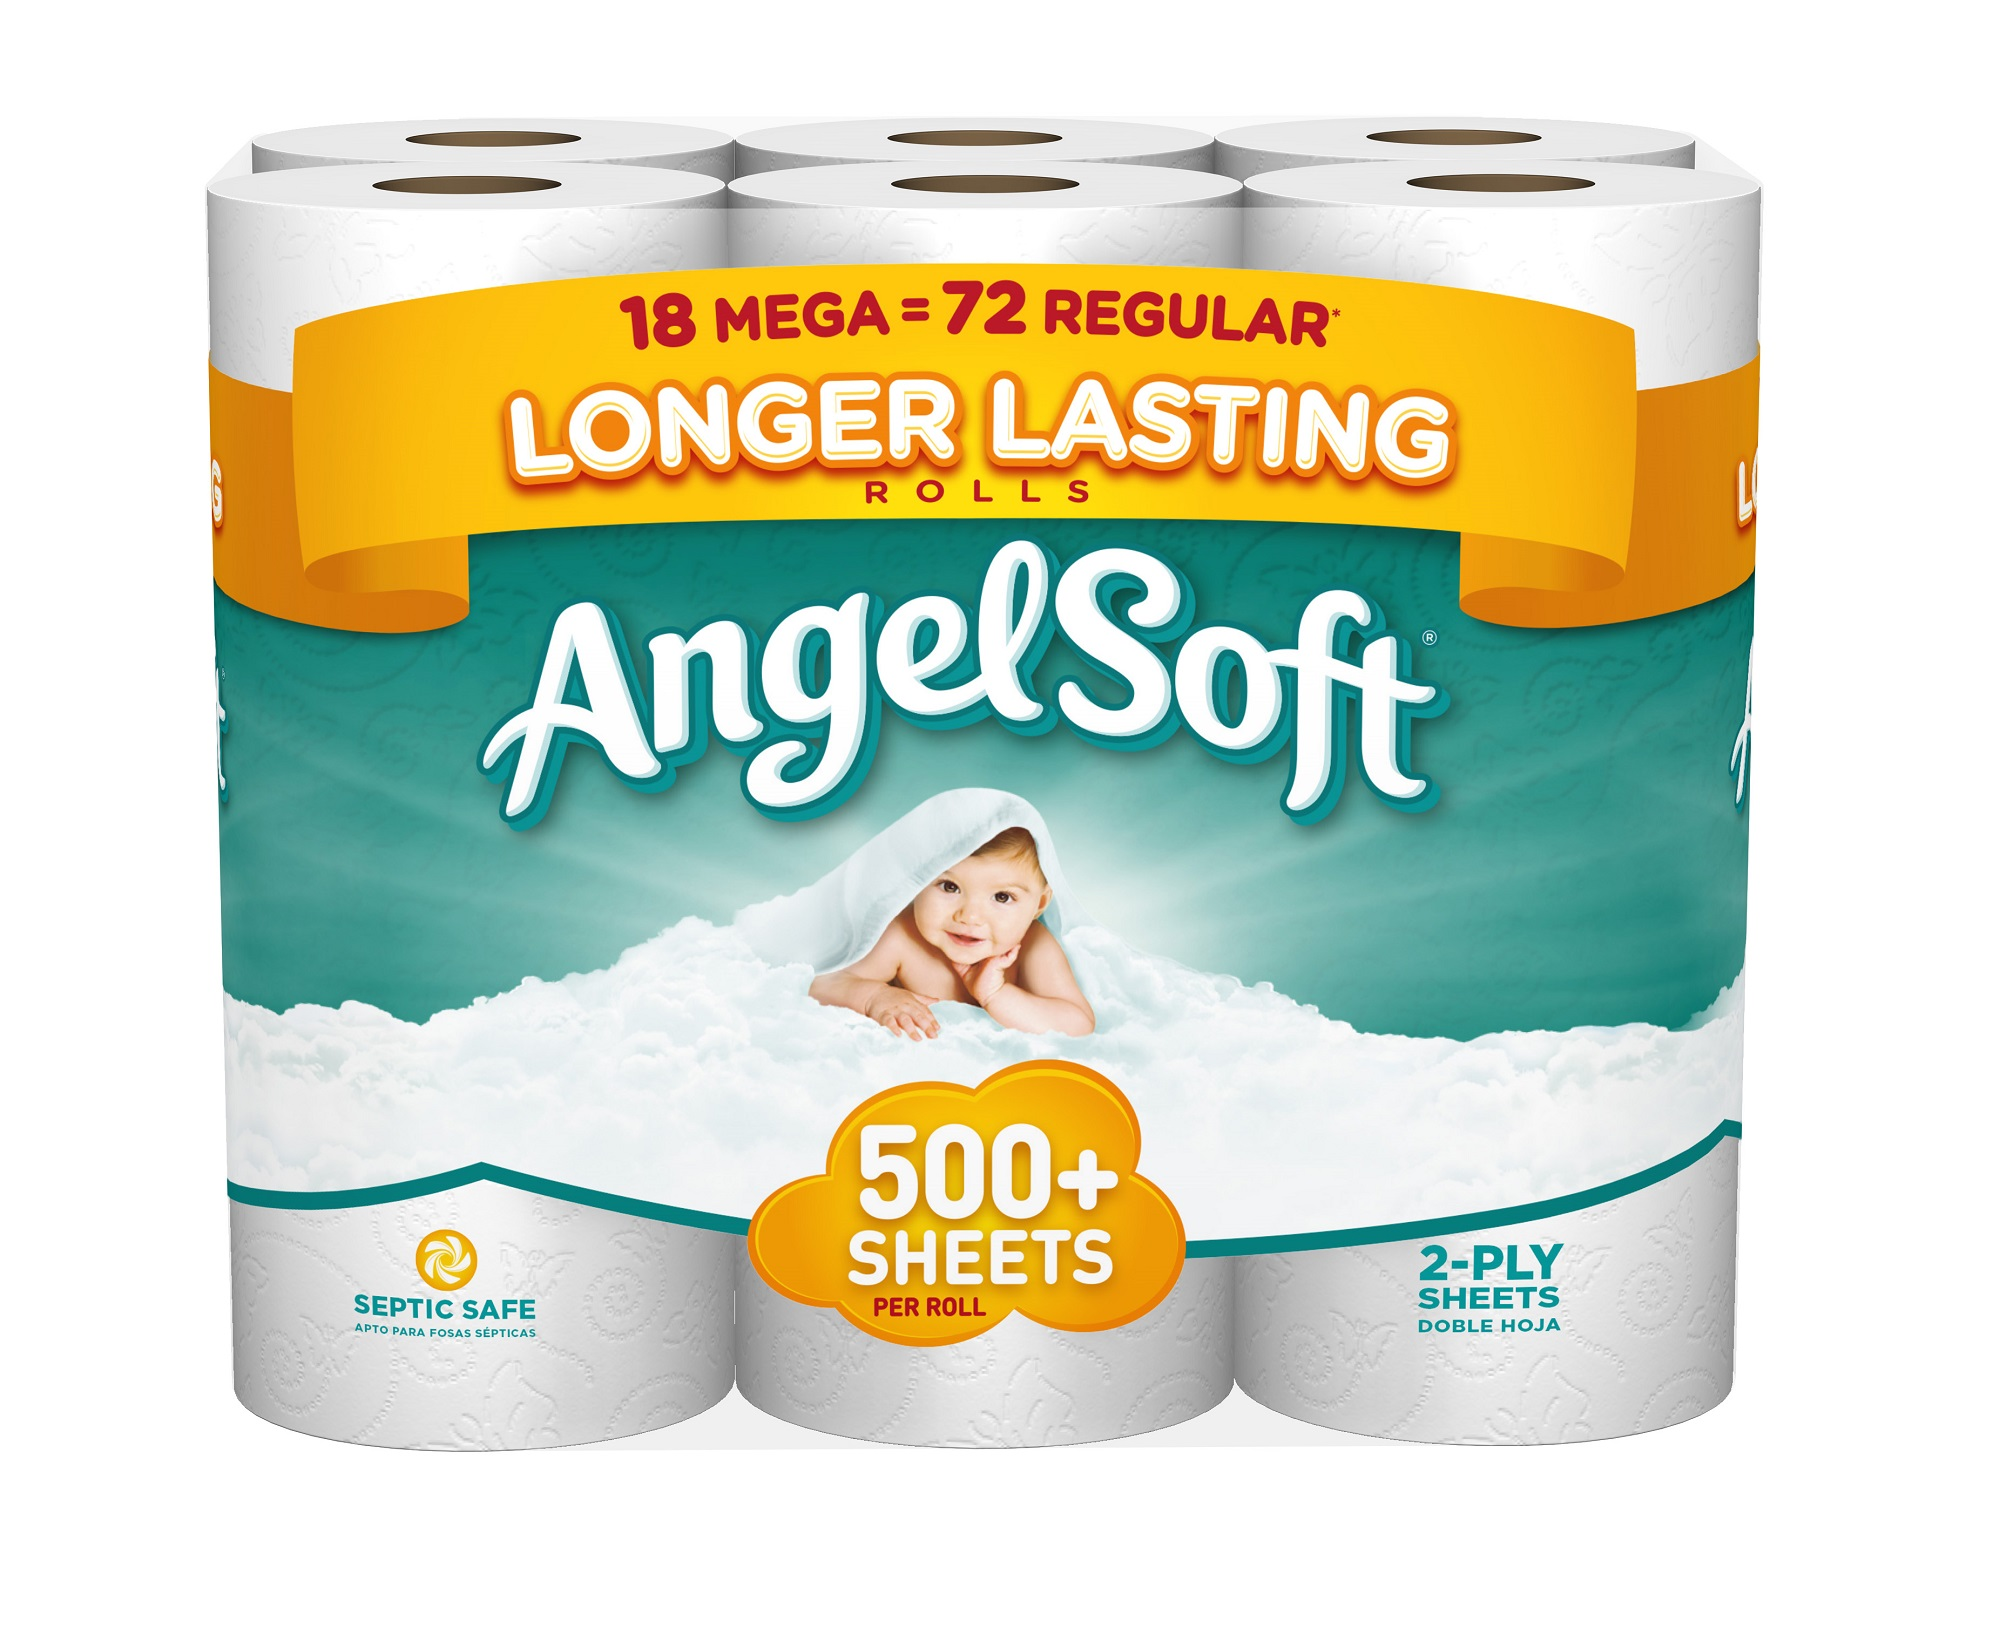 Angel Soft Toilet Paper, 18 Mega Rolls, Bath Tissue by Georgia Pacific